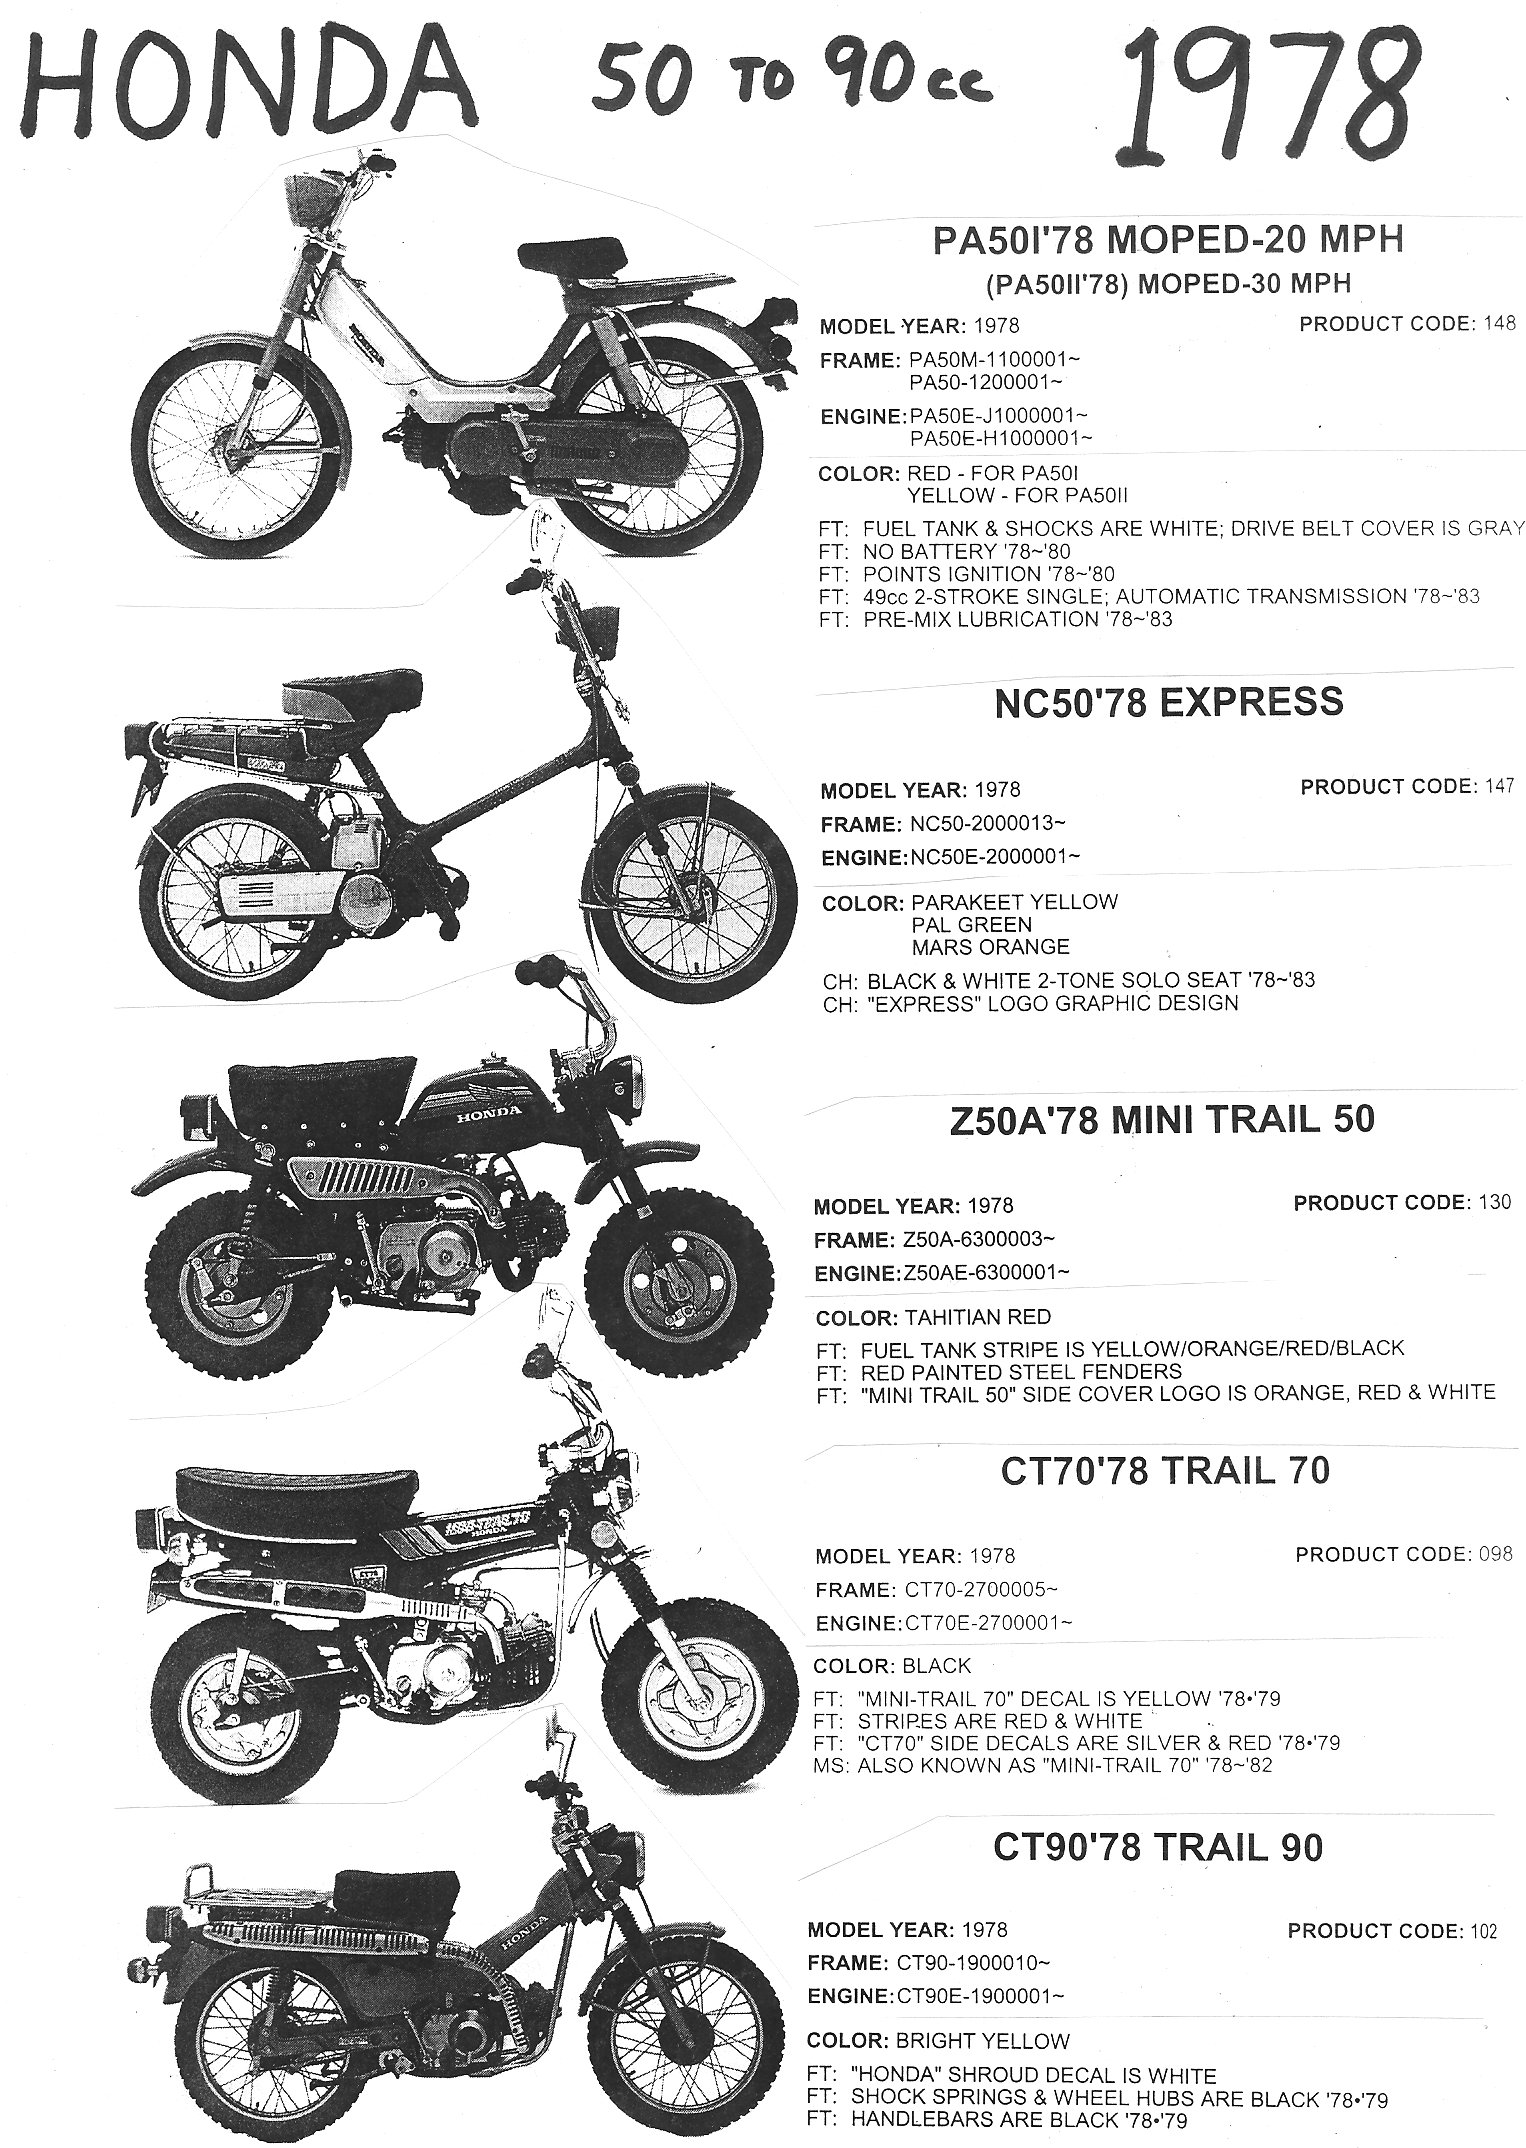 Honda Ct90 Engine Diagram Wiring Library Ct110 Parts Myrons Mopeds Info 1978 1979